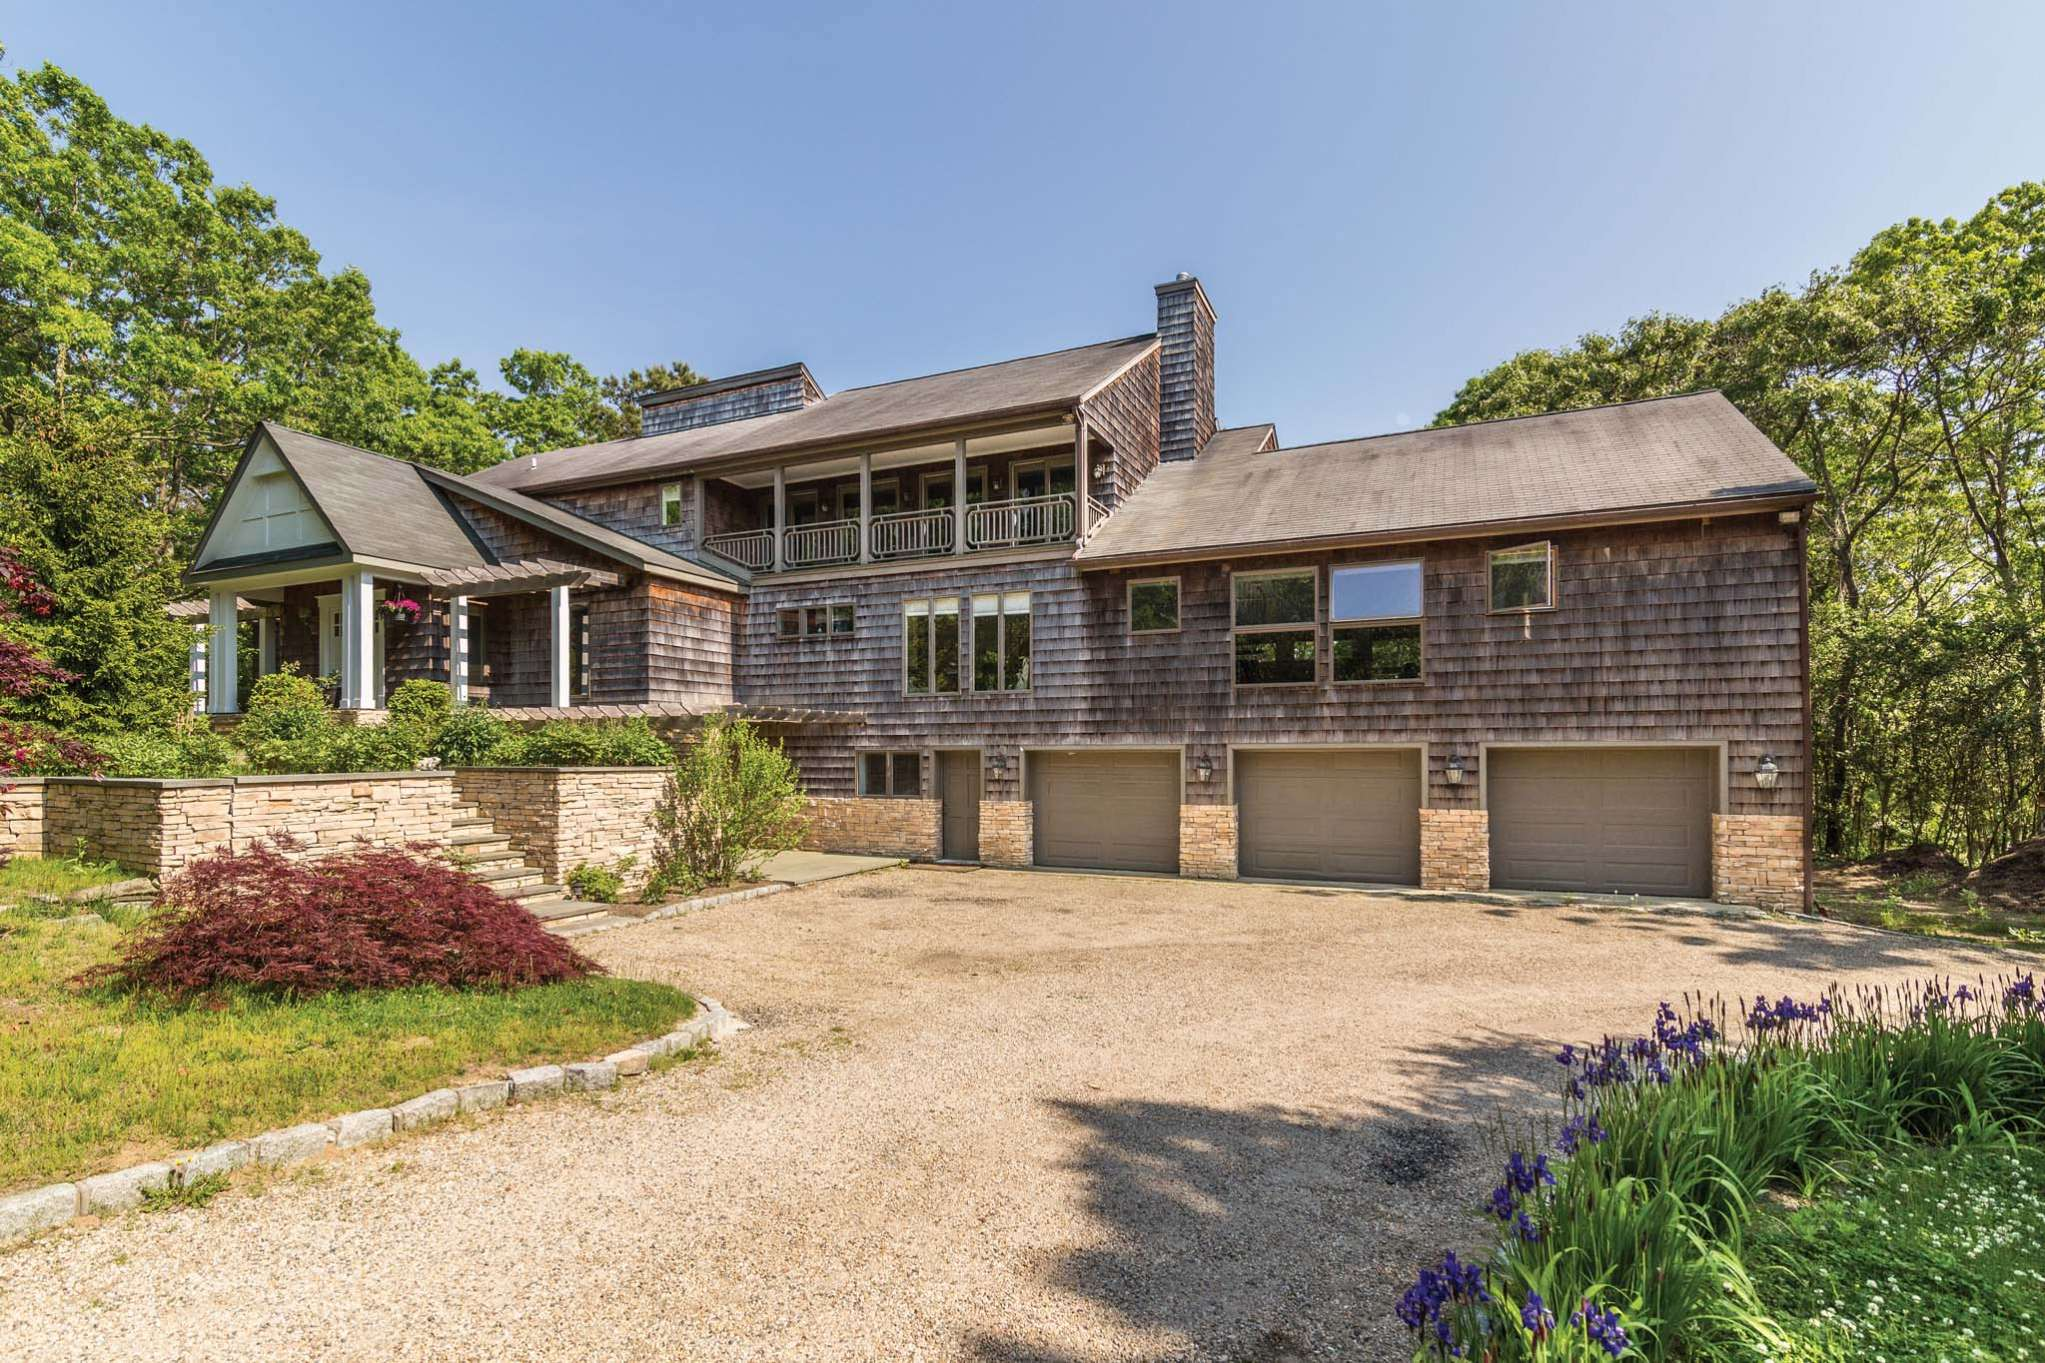 Single Family Home for Sale at Spacious, Light-Filled East Hampton Traditional 46 Ancient Highway, East Hampton, New York